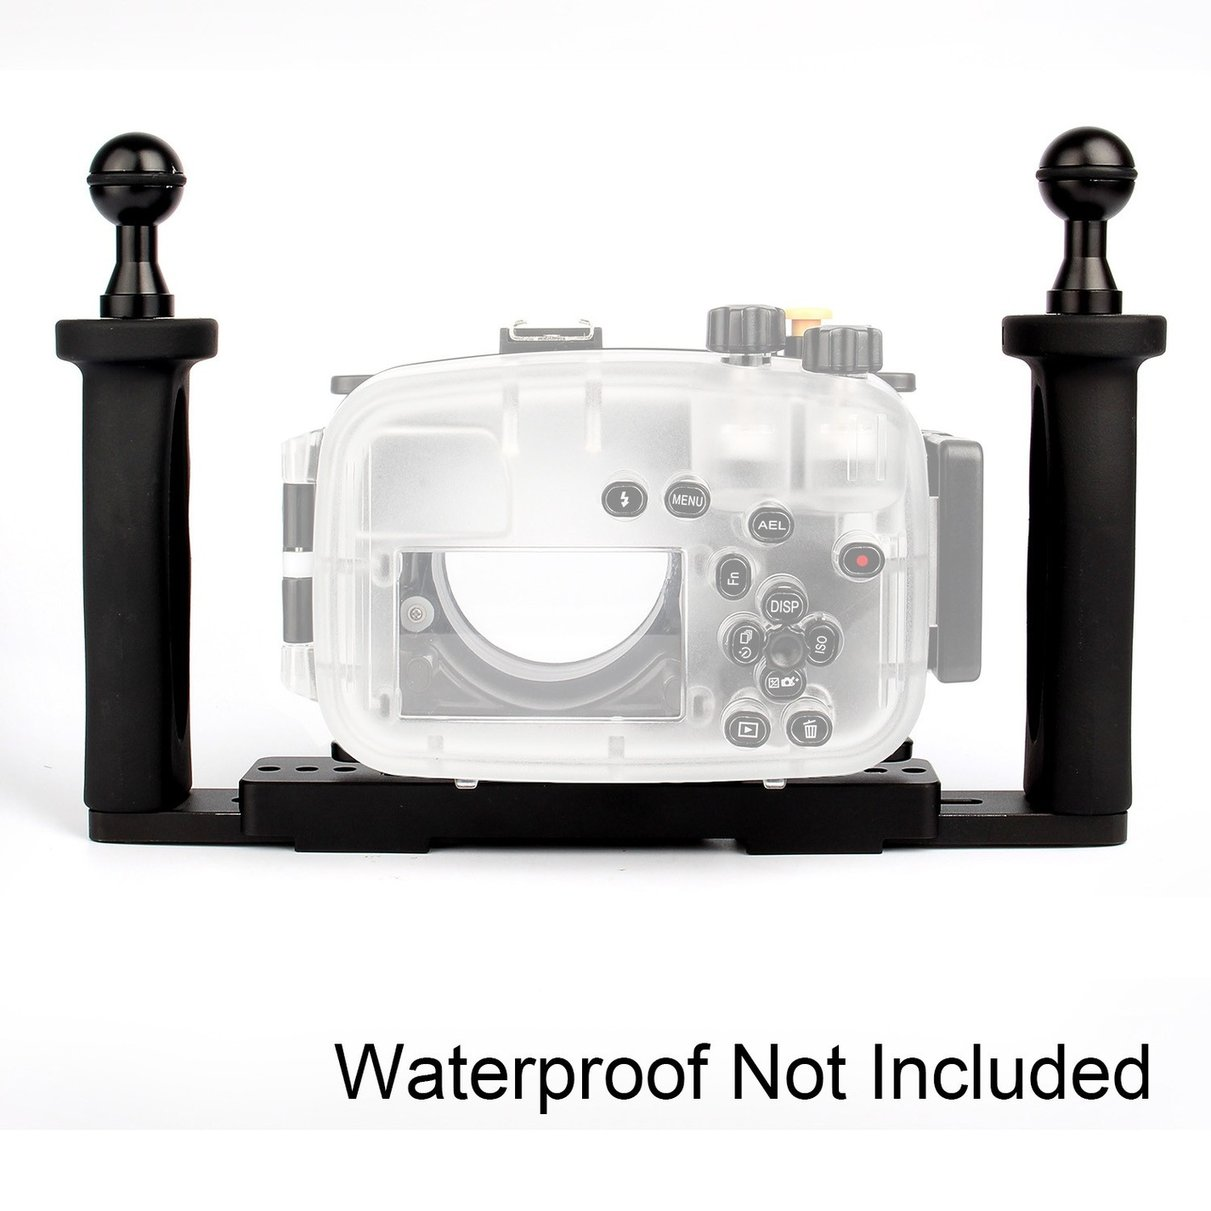 Meikon Two Hands Aluminium Tray for Underwater Camera Housing